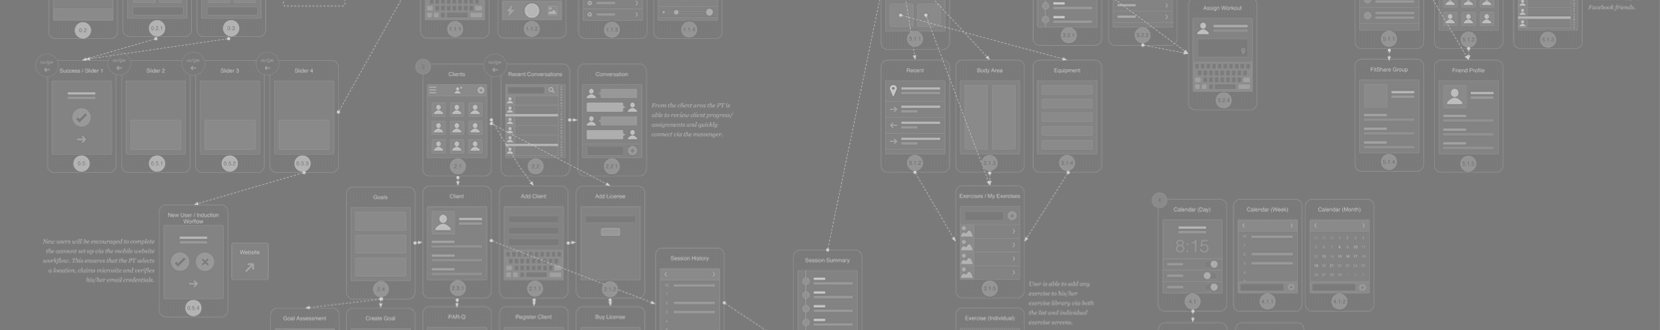 UX Design Wireframe Background